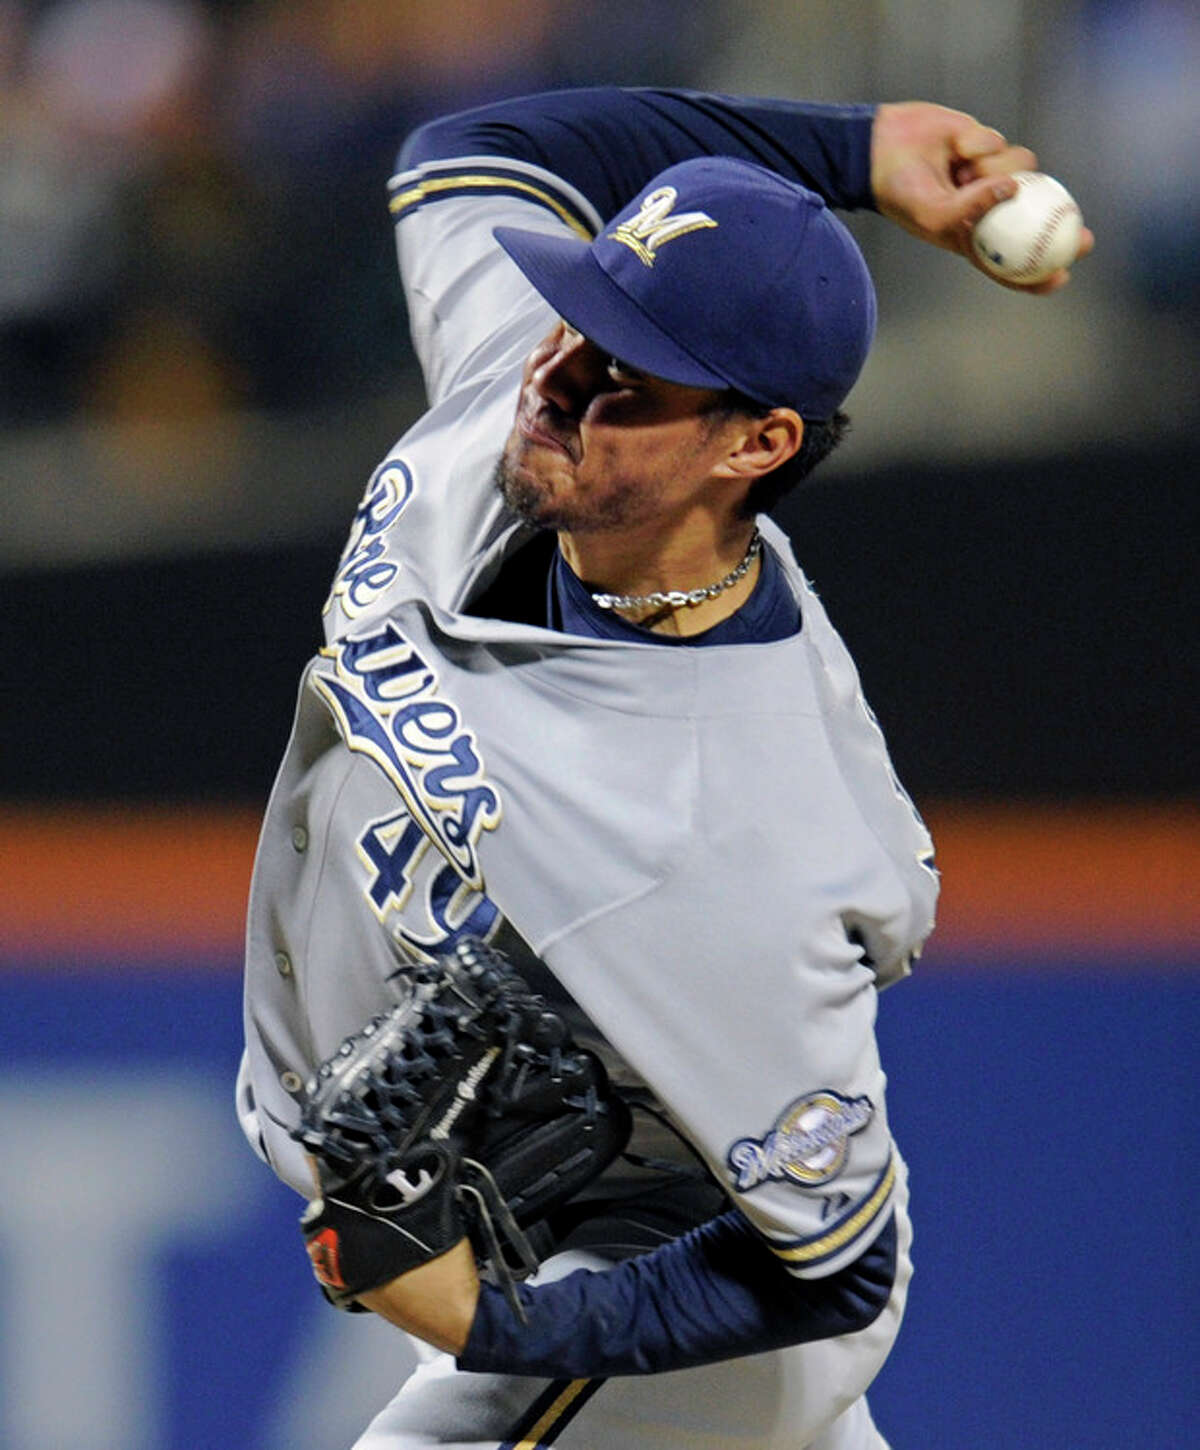 Milwaukee Brewers pitcher Yovani Gallardo delivers the ball to the New York Mets during the first inning of a baseball game Friday, Sept. 27, 2013, in New York. (AP Photo/Bill Kostroun)